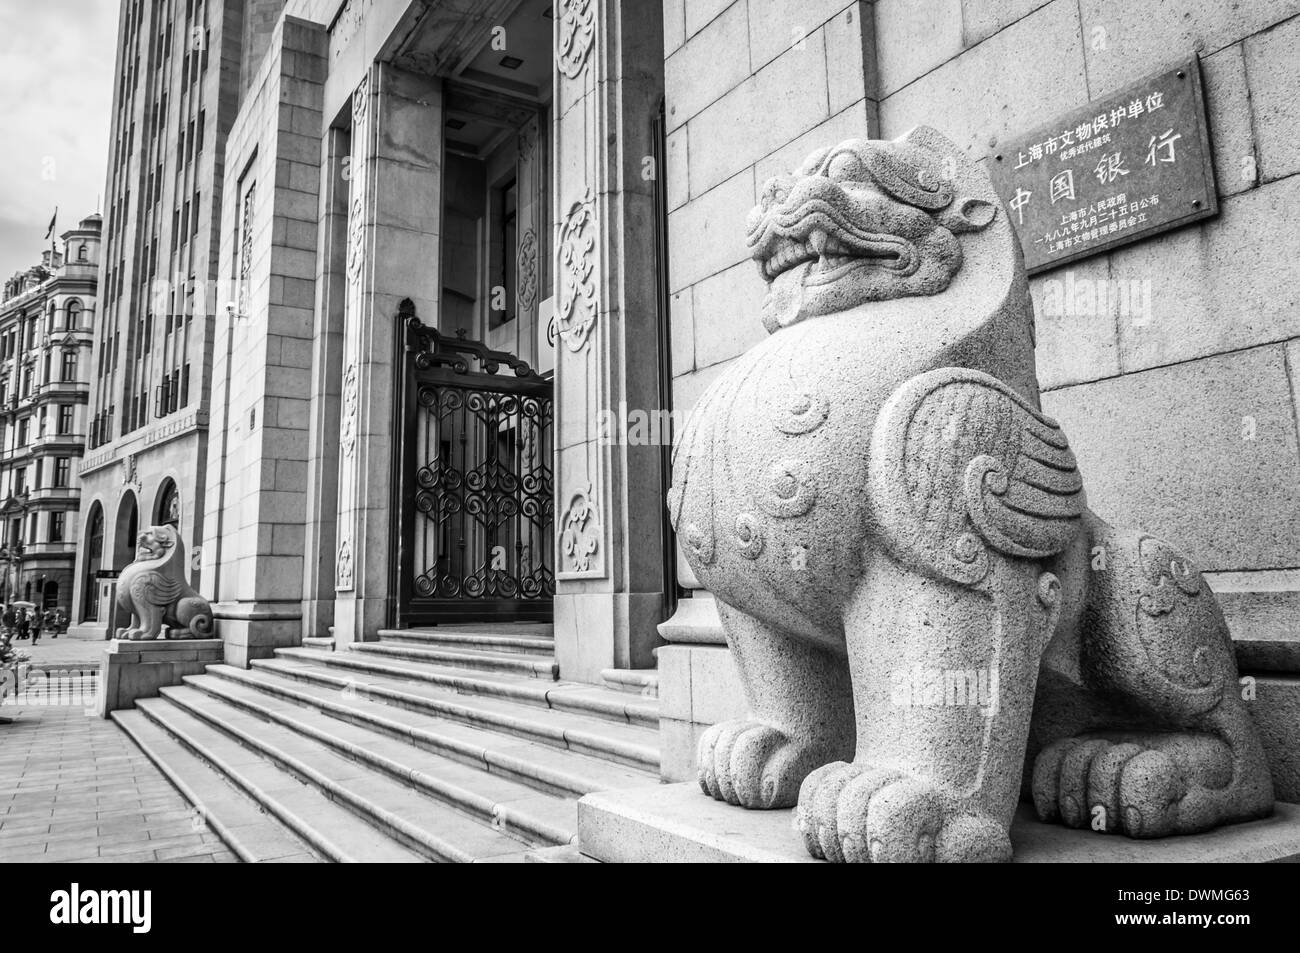 Colonial architecture along the Bund in Shanghai, China. - Stock Image